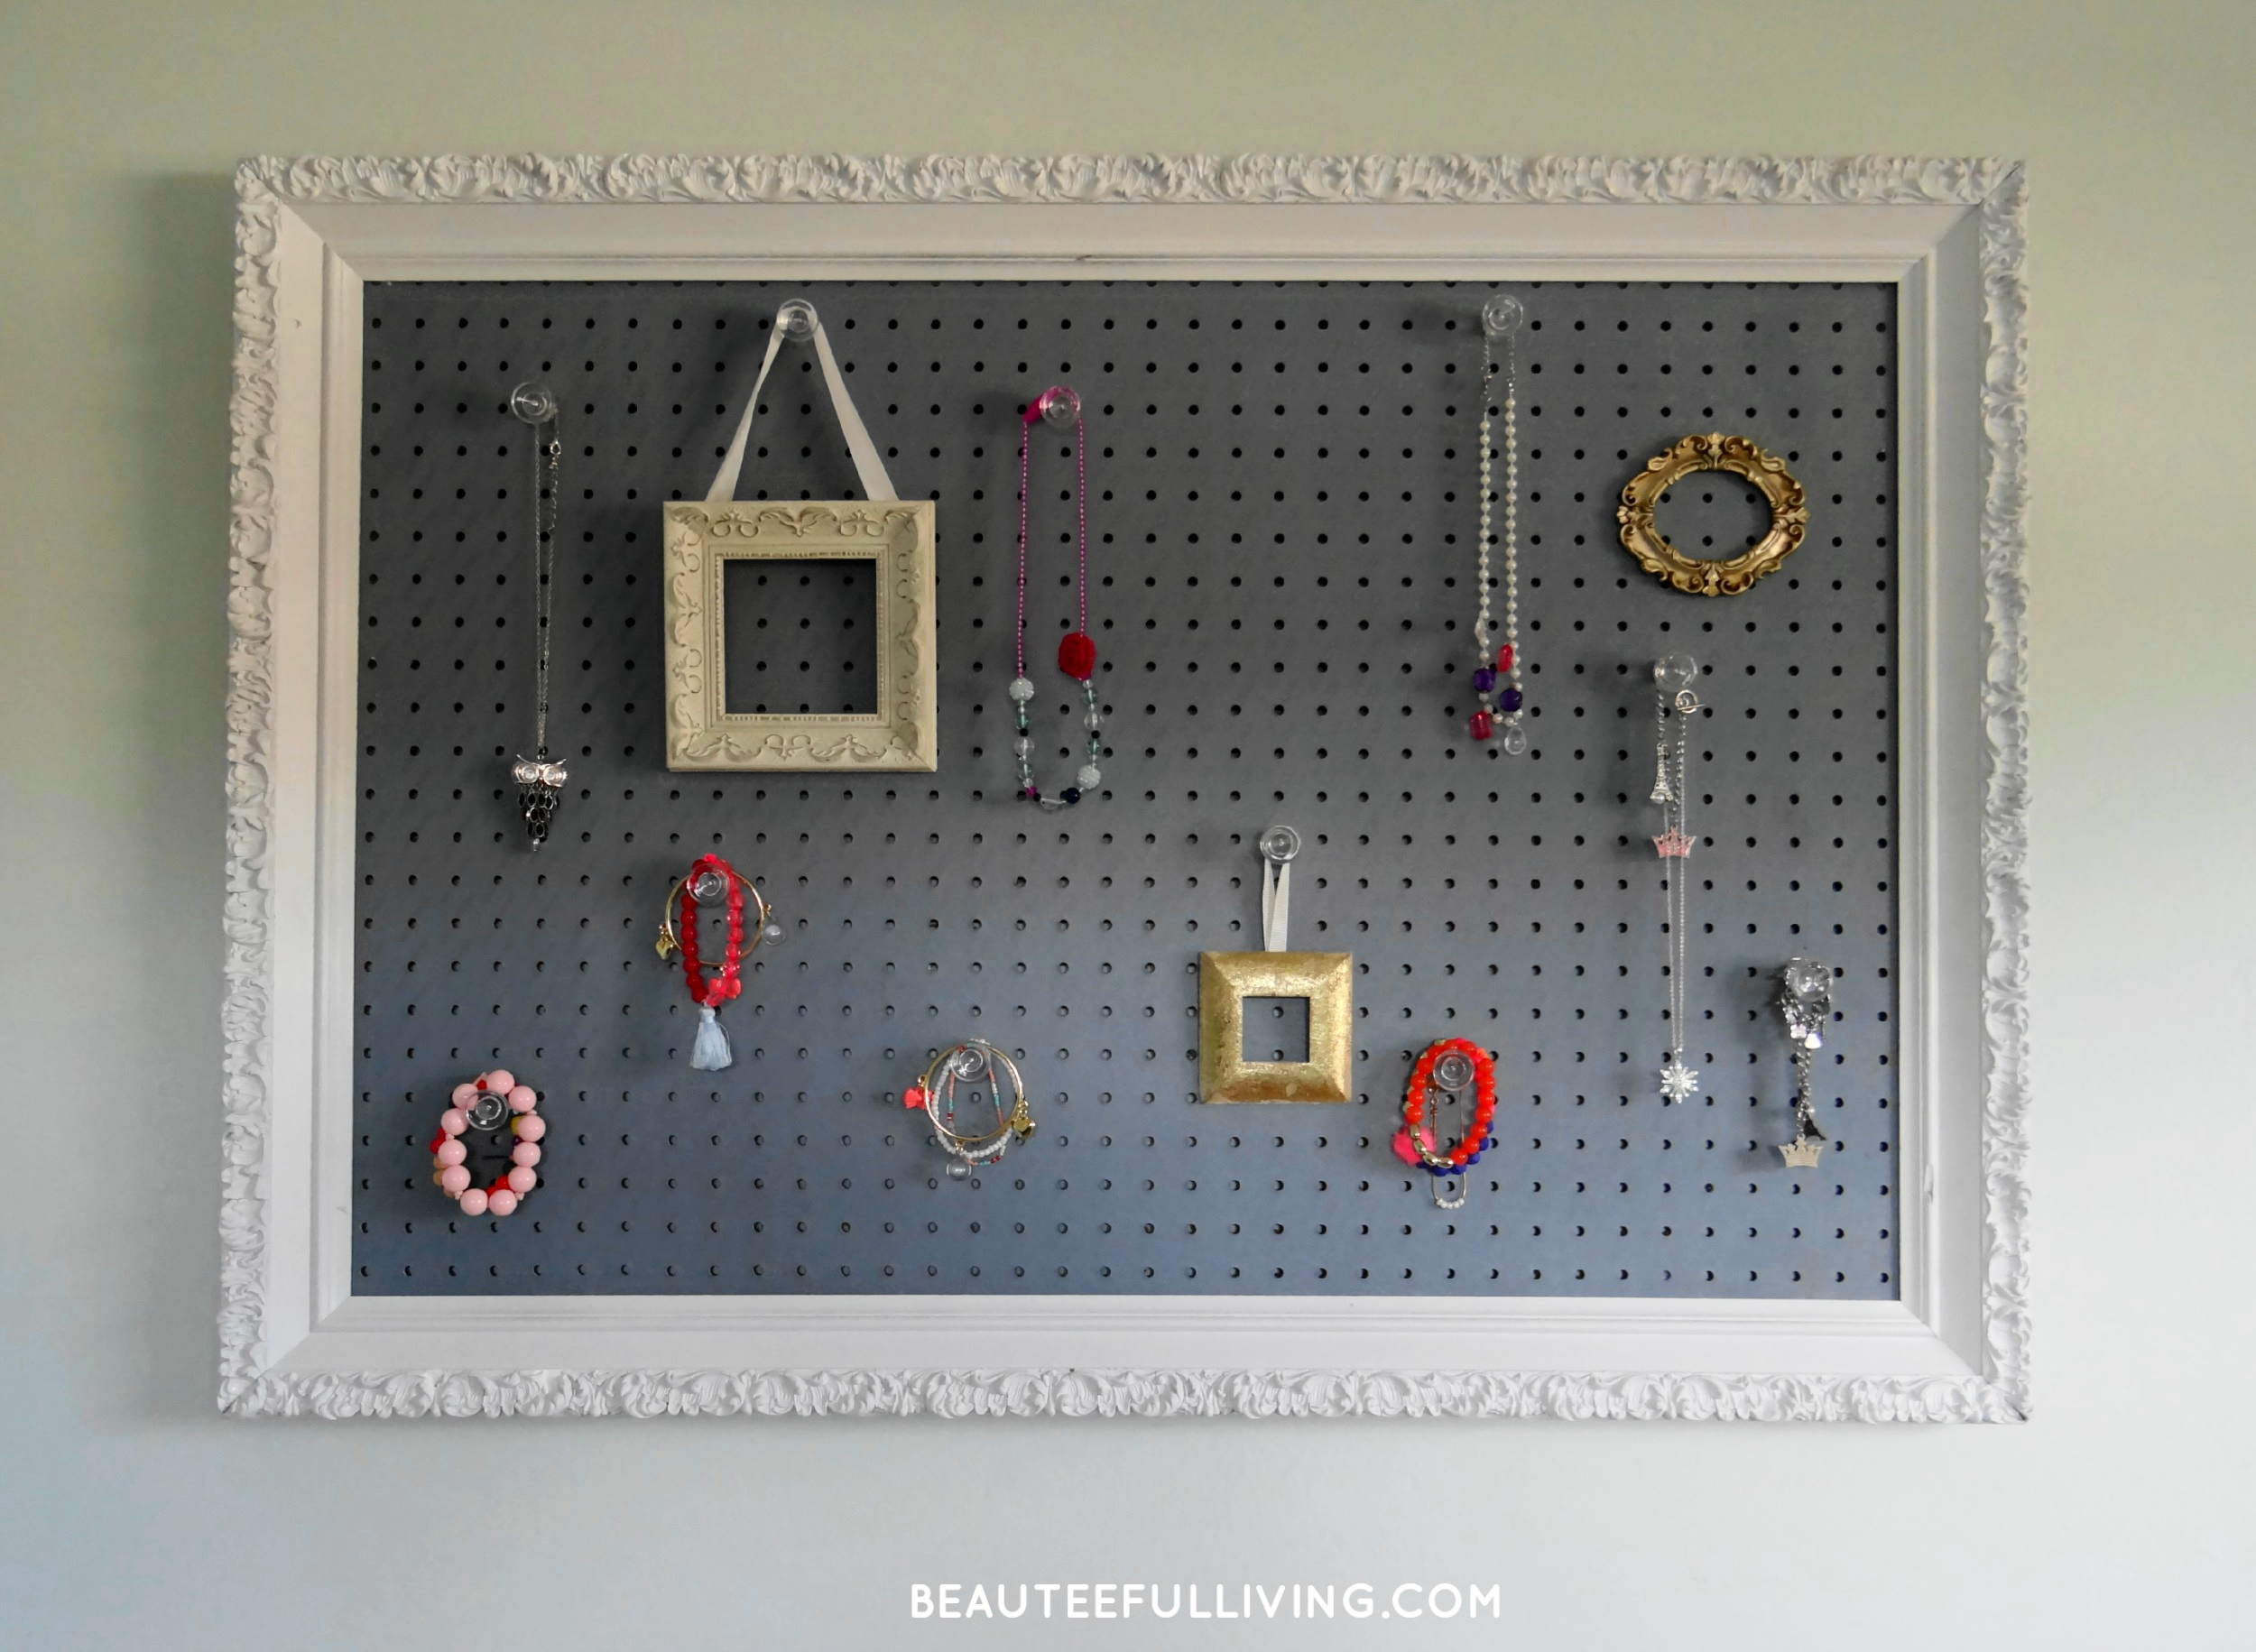 Jewelry Pegboard Frame - Beauteeful Living (1)